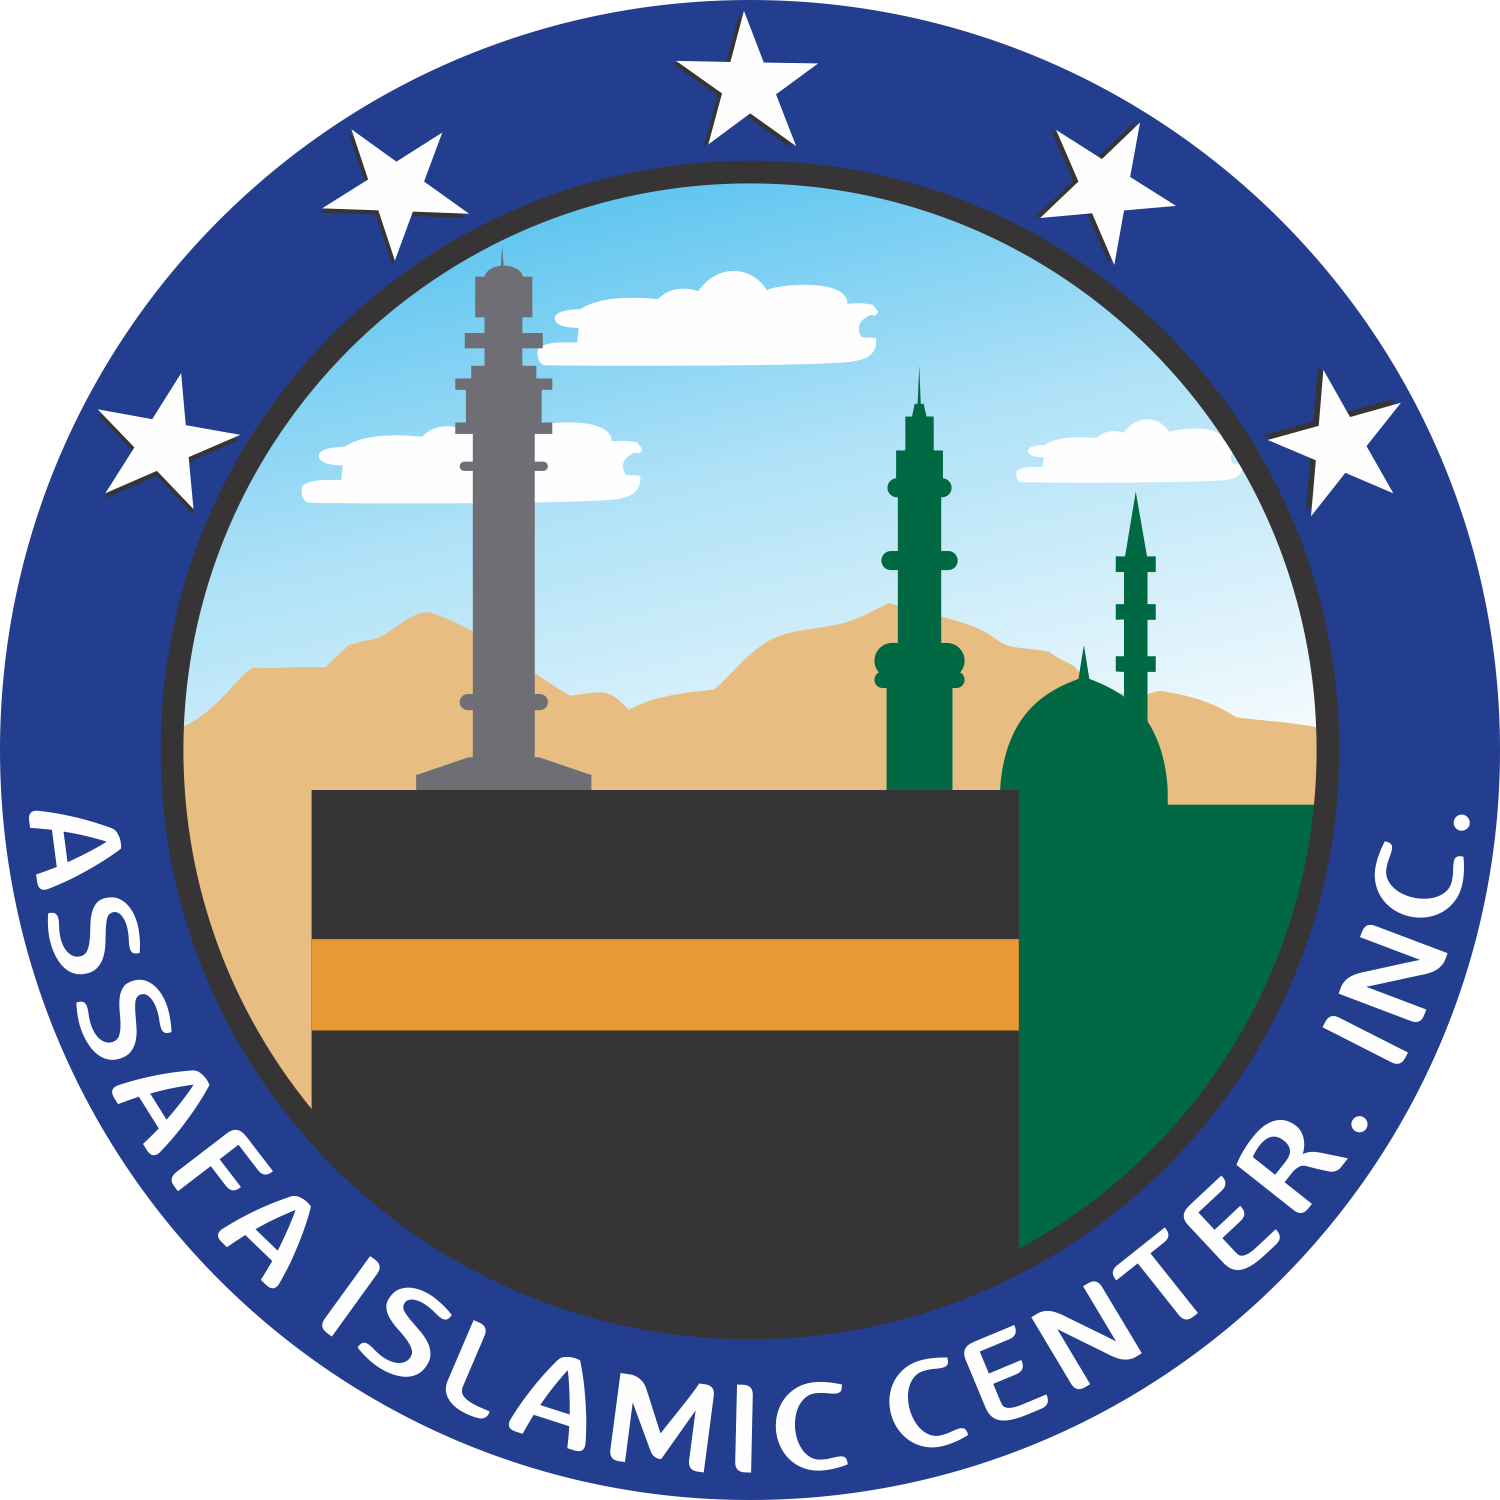 Assafa Islamic Center